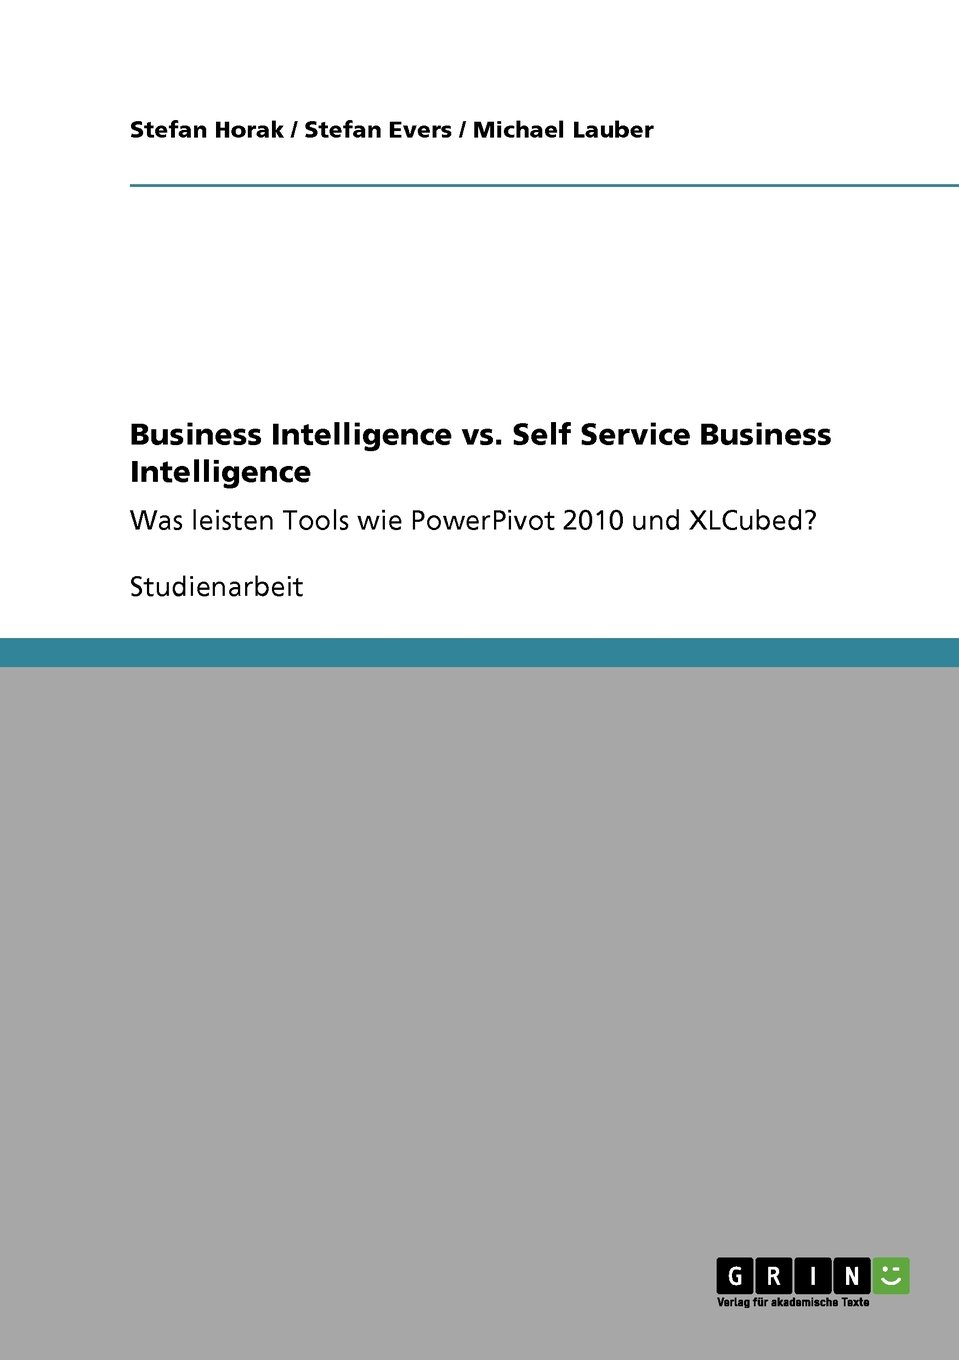 Business Intelligence vs. Self Service Business Intelligence: Was leisten Tools wie PowerPivot 2010 und XLCubed?